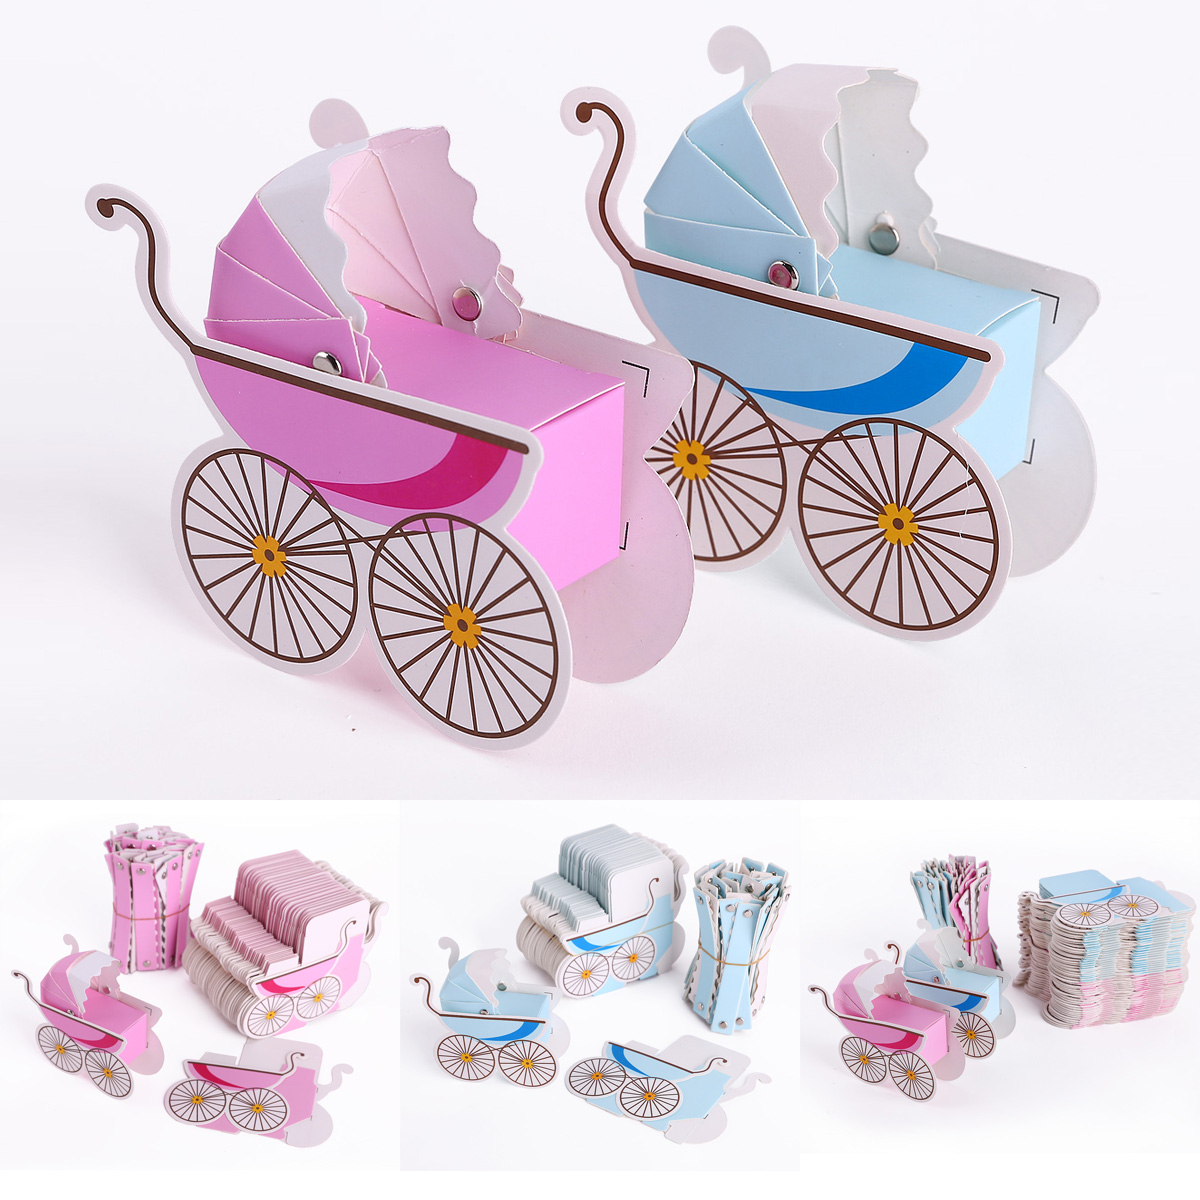 50x Laser Cut Baby Carriage Stroller Favor Gift Wrap Boxes Shower ...